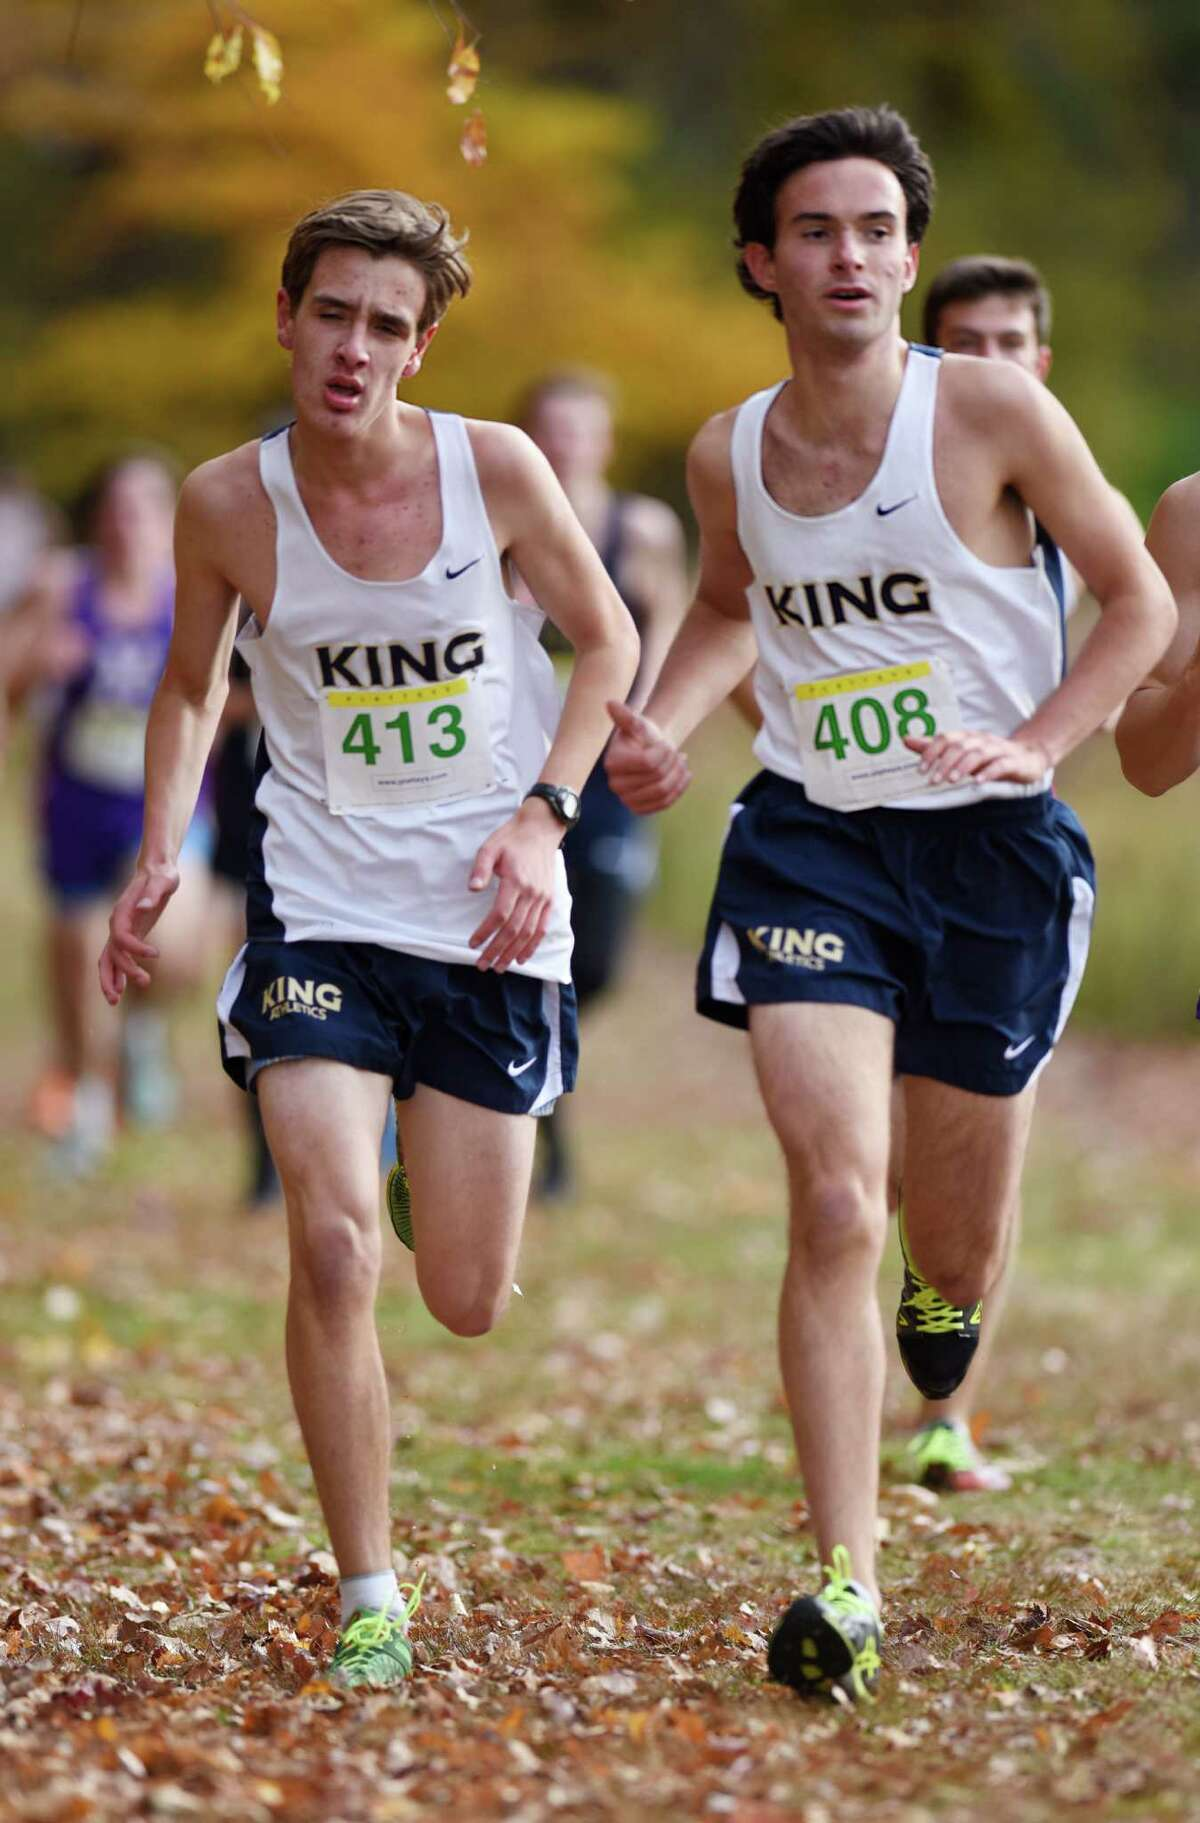 King School runners Jonathan Richter , left, and Richard Jove run in the Fairchester Athletic Association (FAA) high school cross country championships at Waveny Park in New Canaan, Conn. Monday, Nov. 2, 2015. Brunswick School won the boys team championship and School of the Holy Child won the girls team championship.